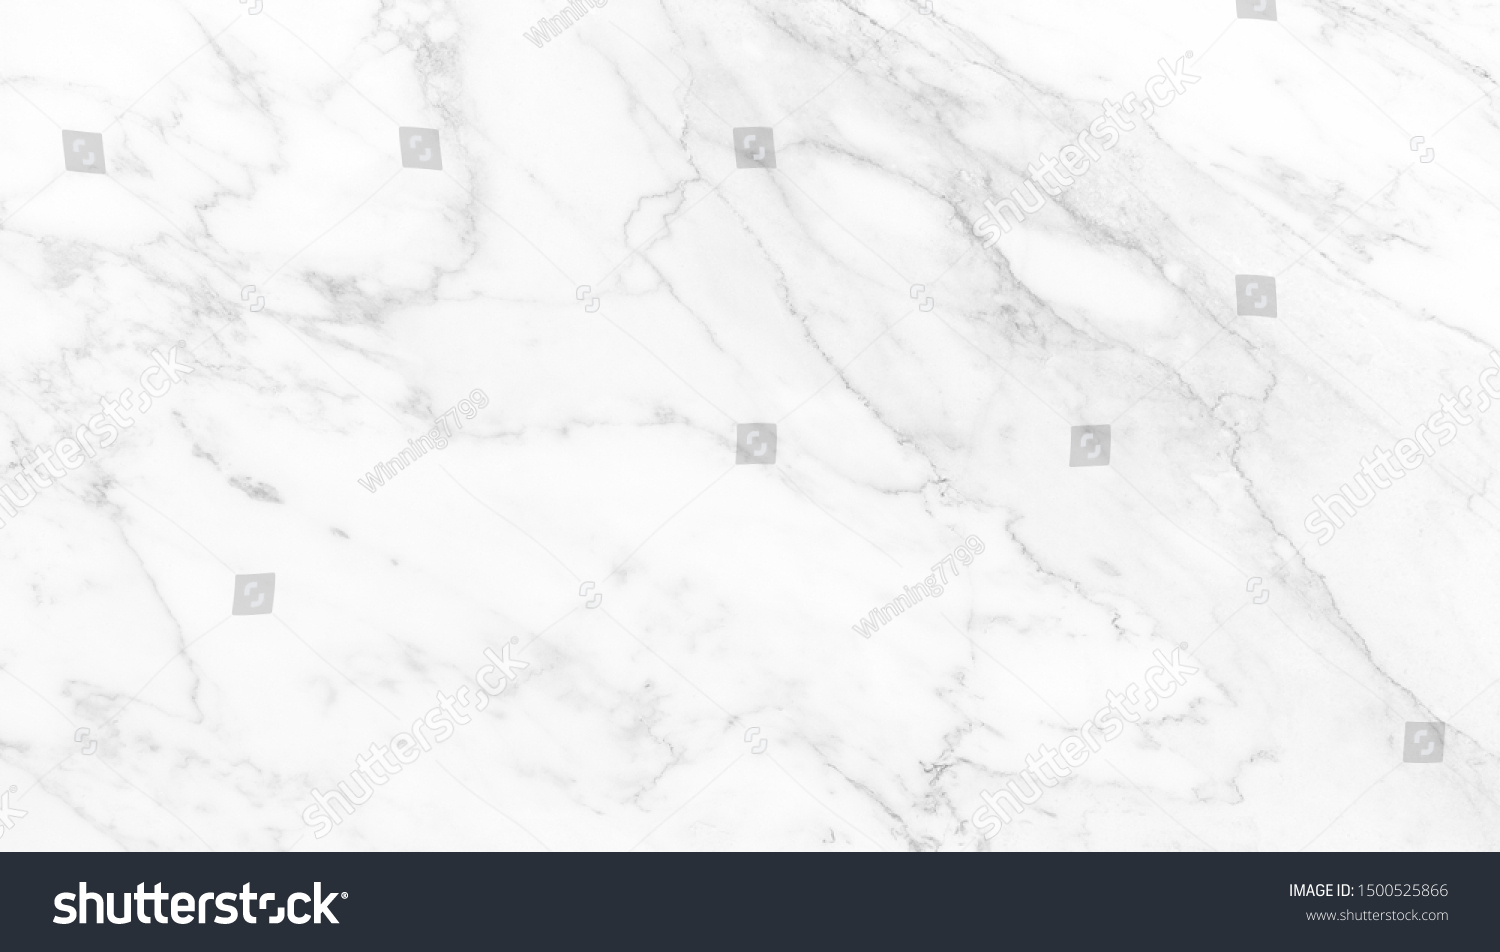 White marble texture background, abstract marble texture (natural patterns) for design. #1500525866